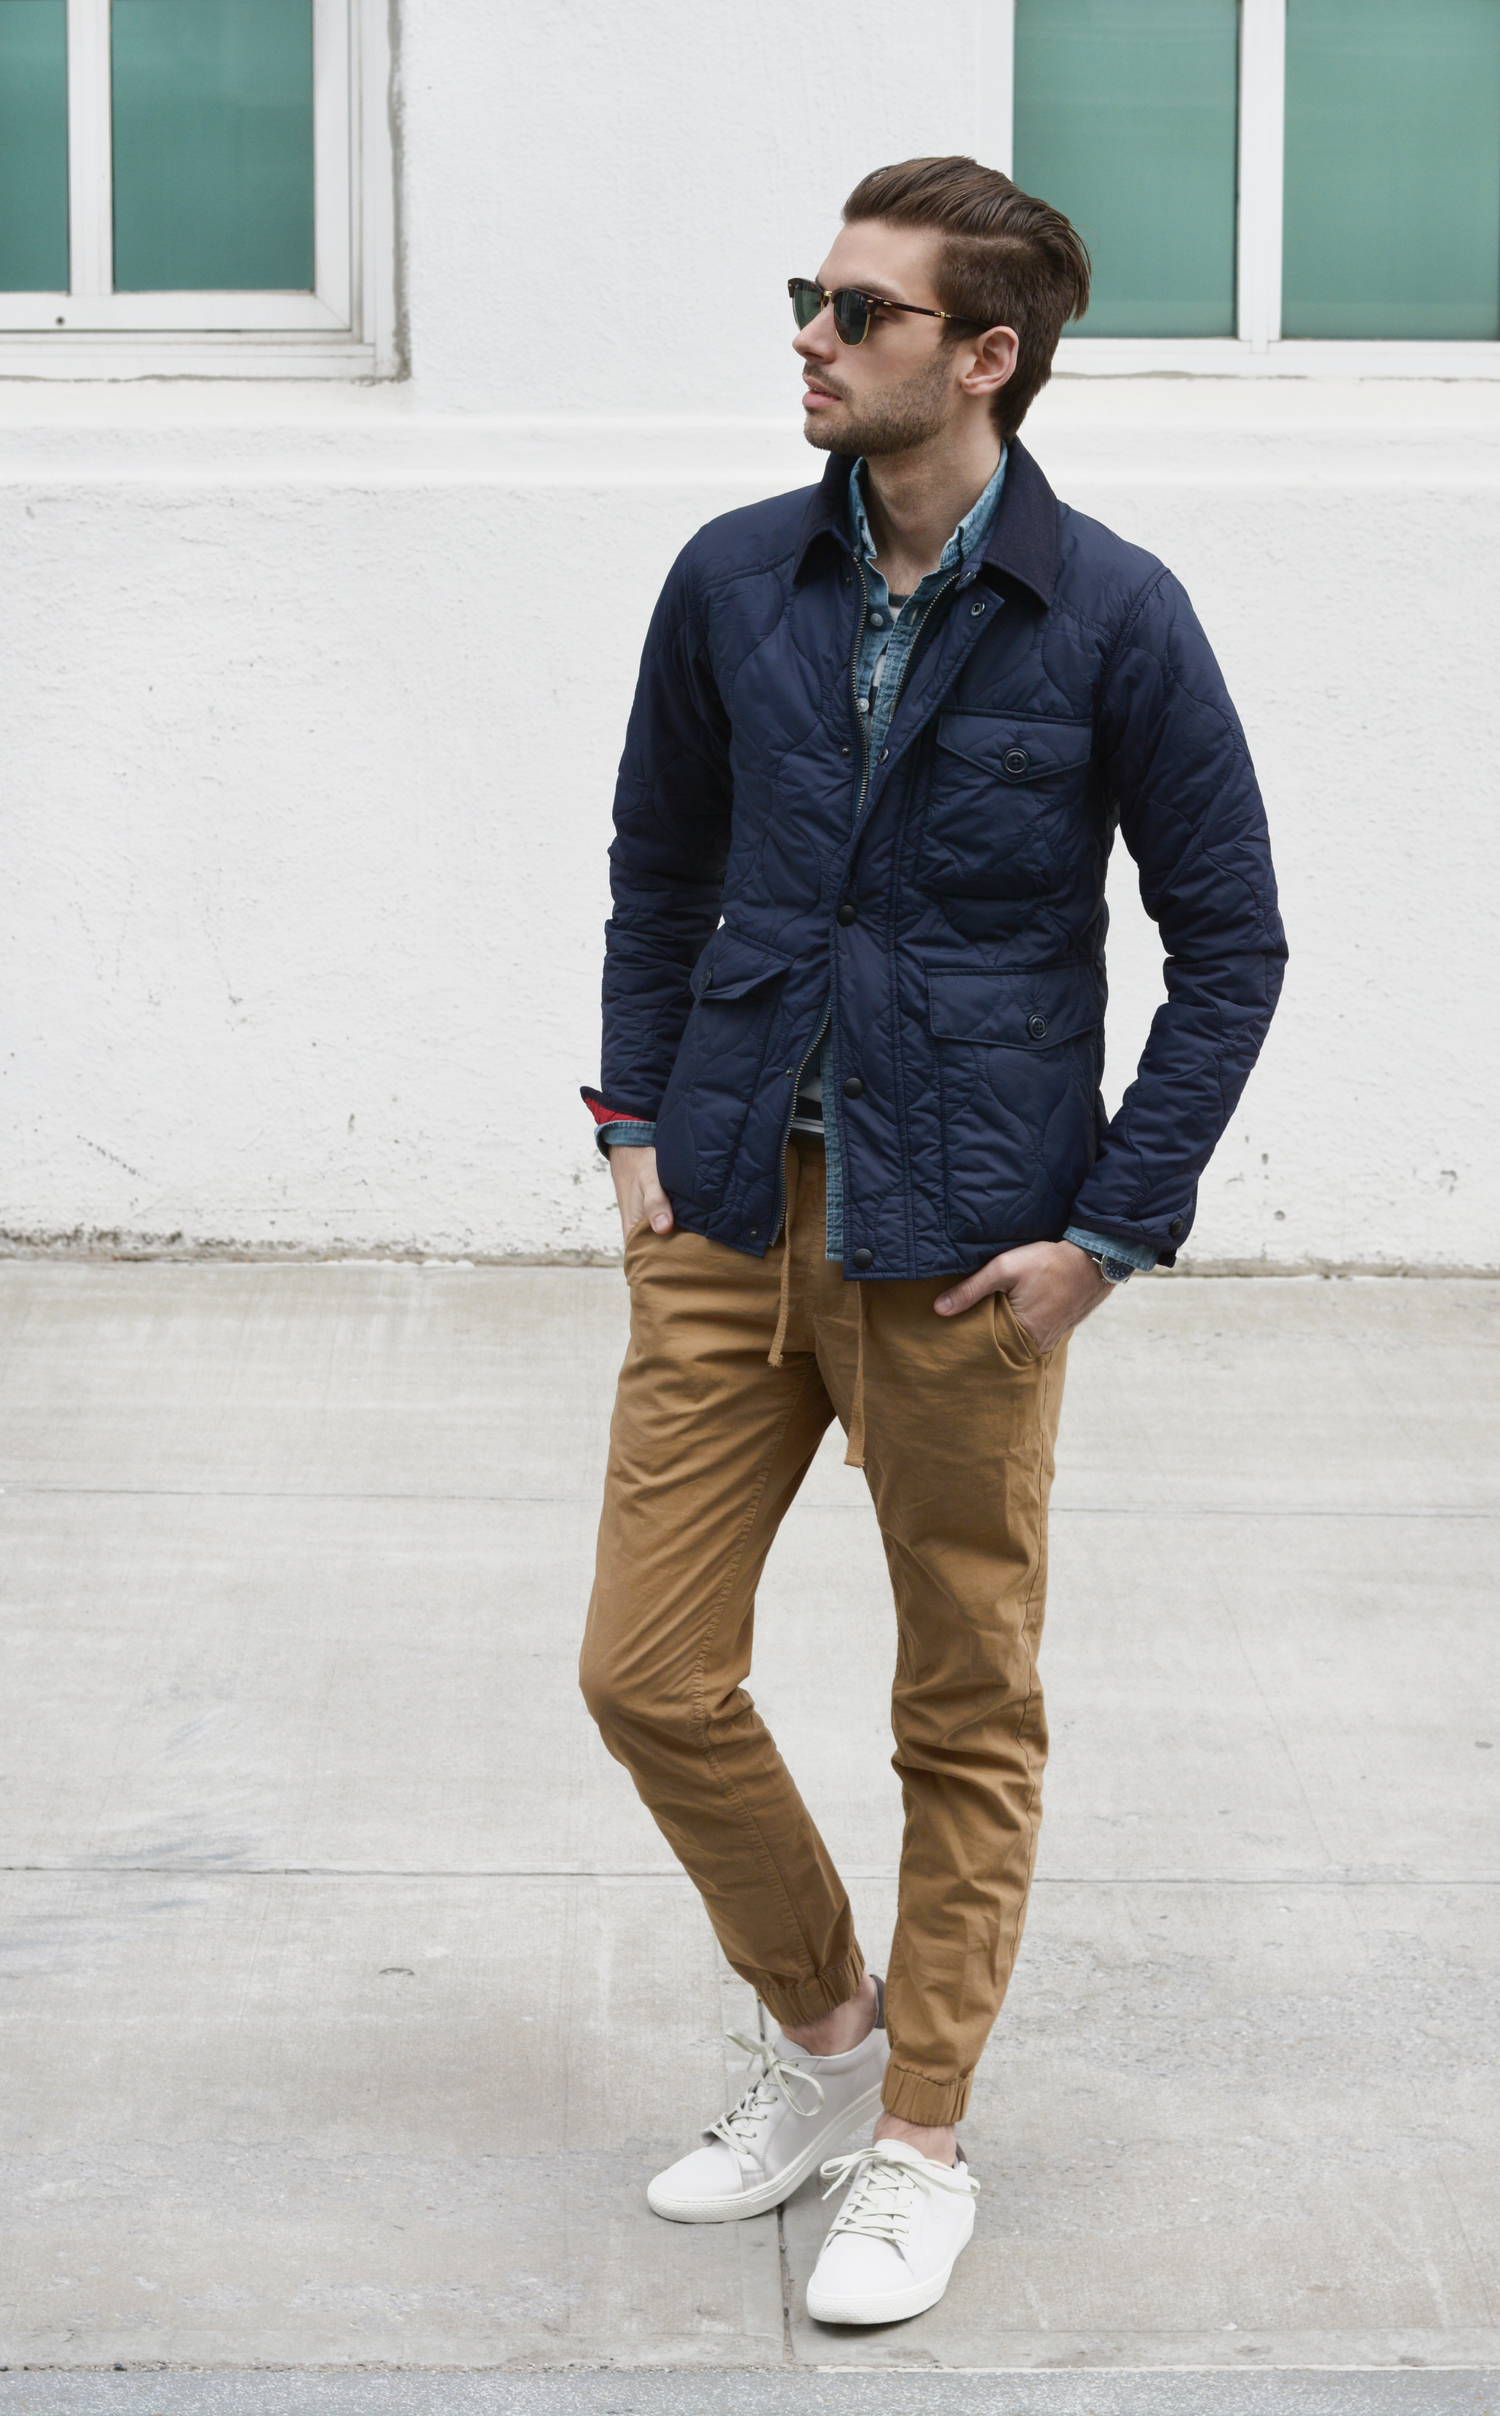 How To Wear Khaki Chinos With White Low Top Sneakers | Men's Fashion